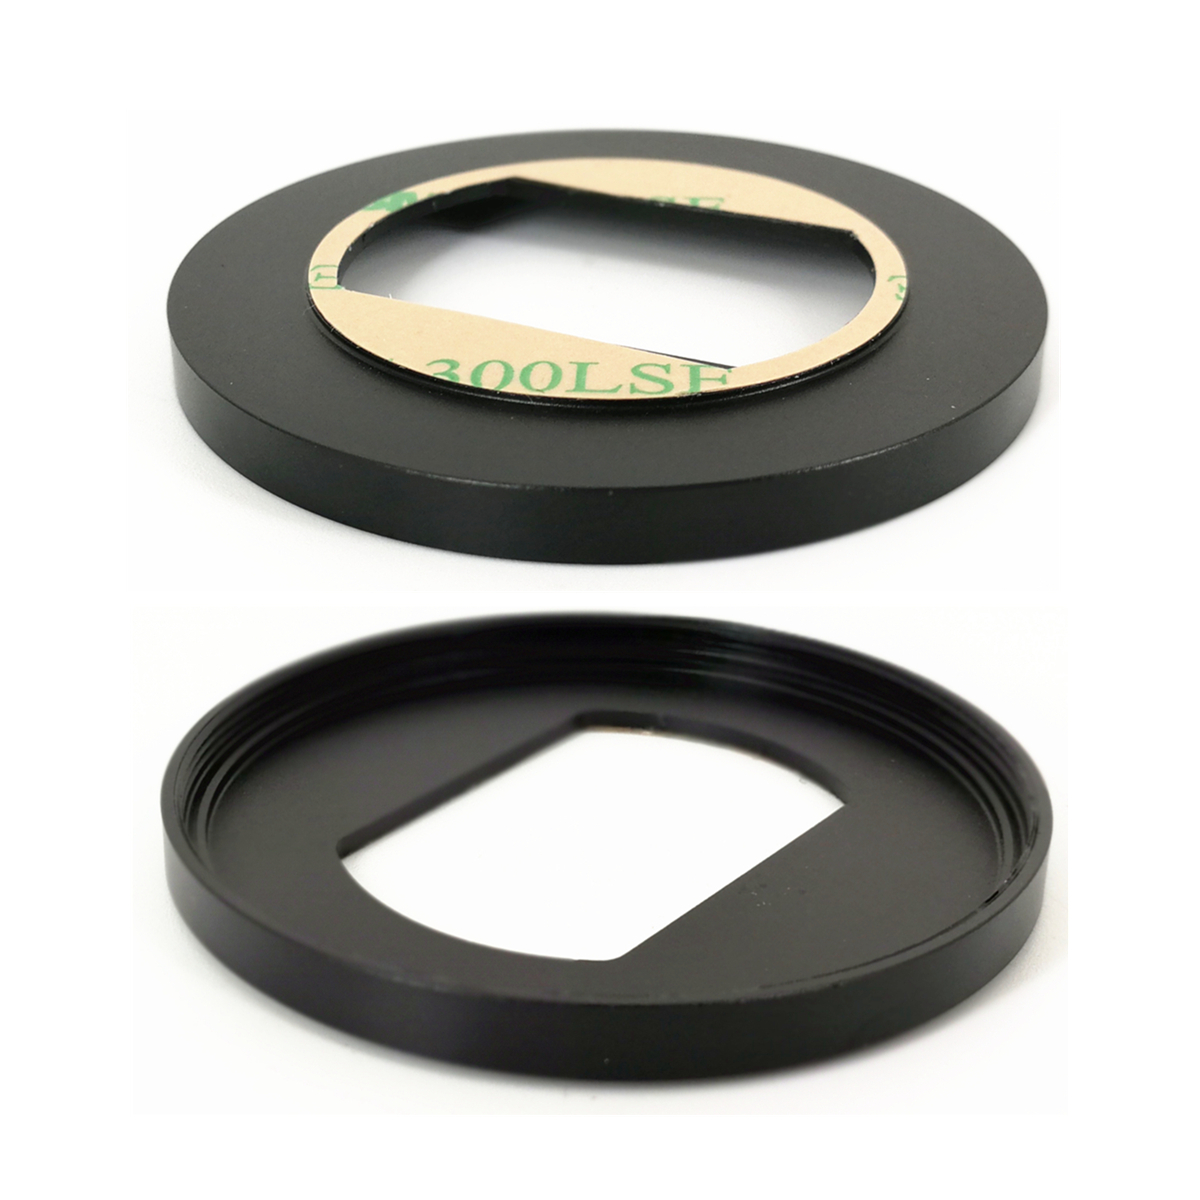 52mm Metal Filter Adapter Ring + Sticker for Sony RX100M5 / RX100M6 / RX100 V RX100V / RX100 VI RX100VI replace RN RX100VI-in Lens Adapter from Consumer Electronics